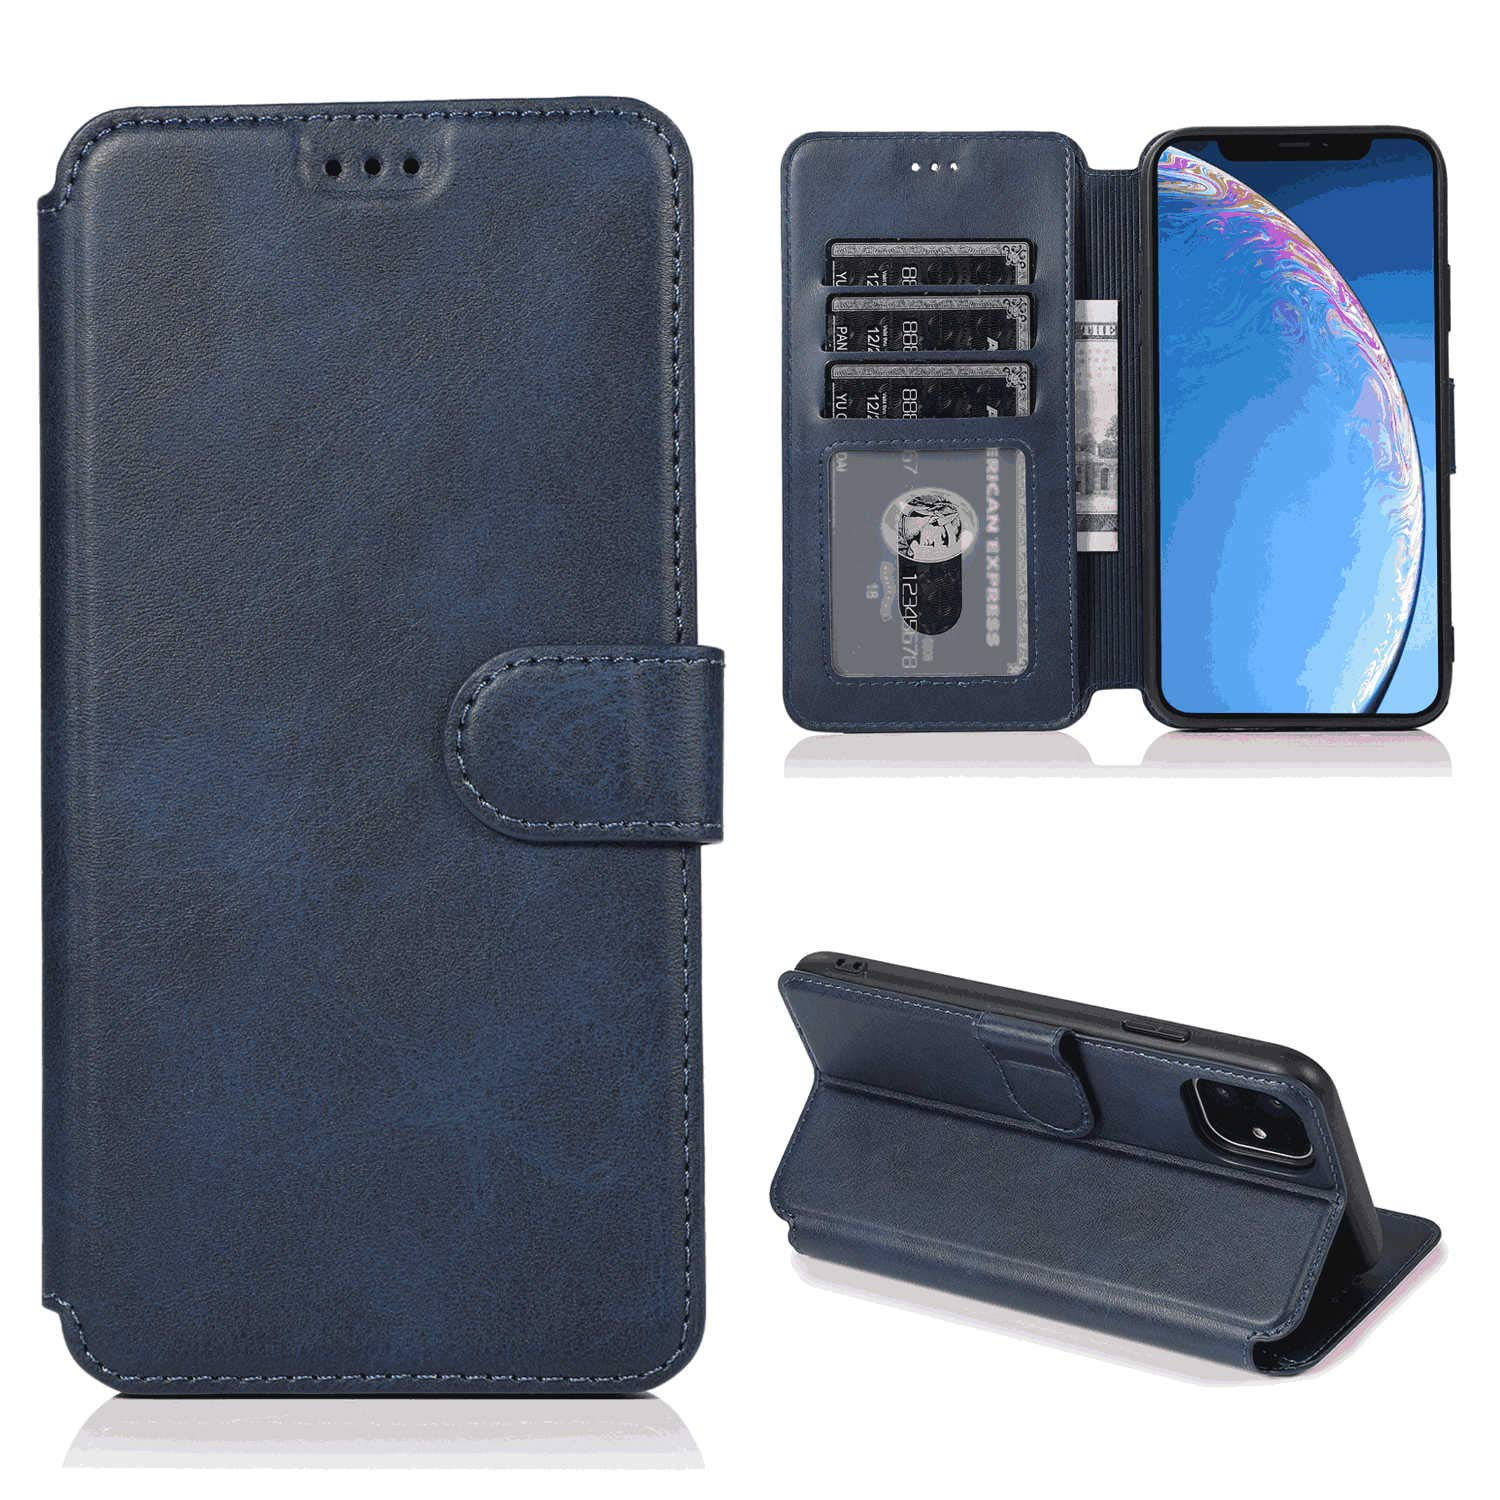 Flip Cover fit for Samsung Galaxy Note8 Business Gifts Simple-Style Leather Case for Samsung Galaxy Note8